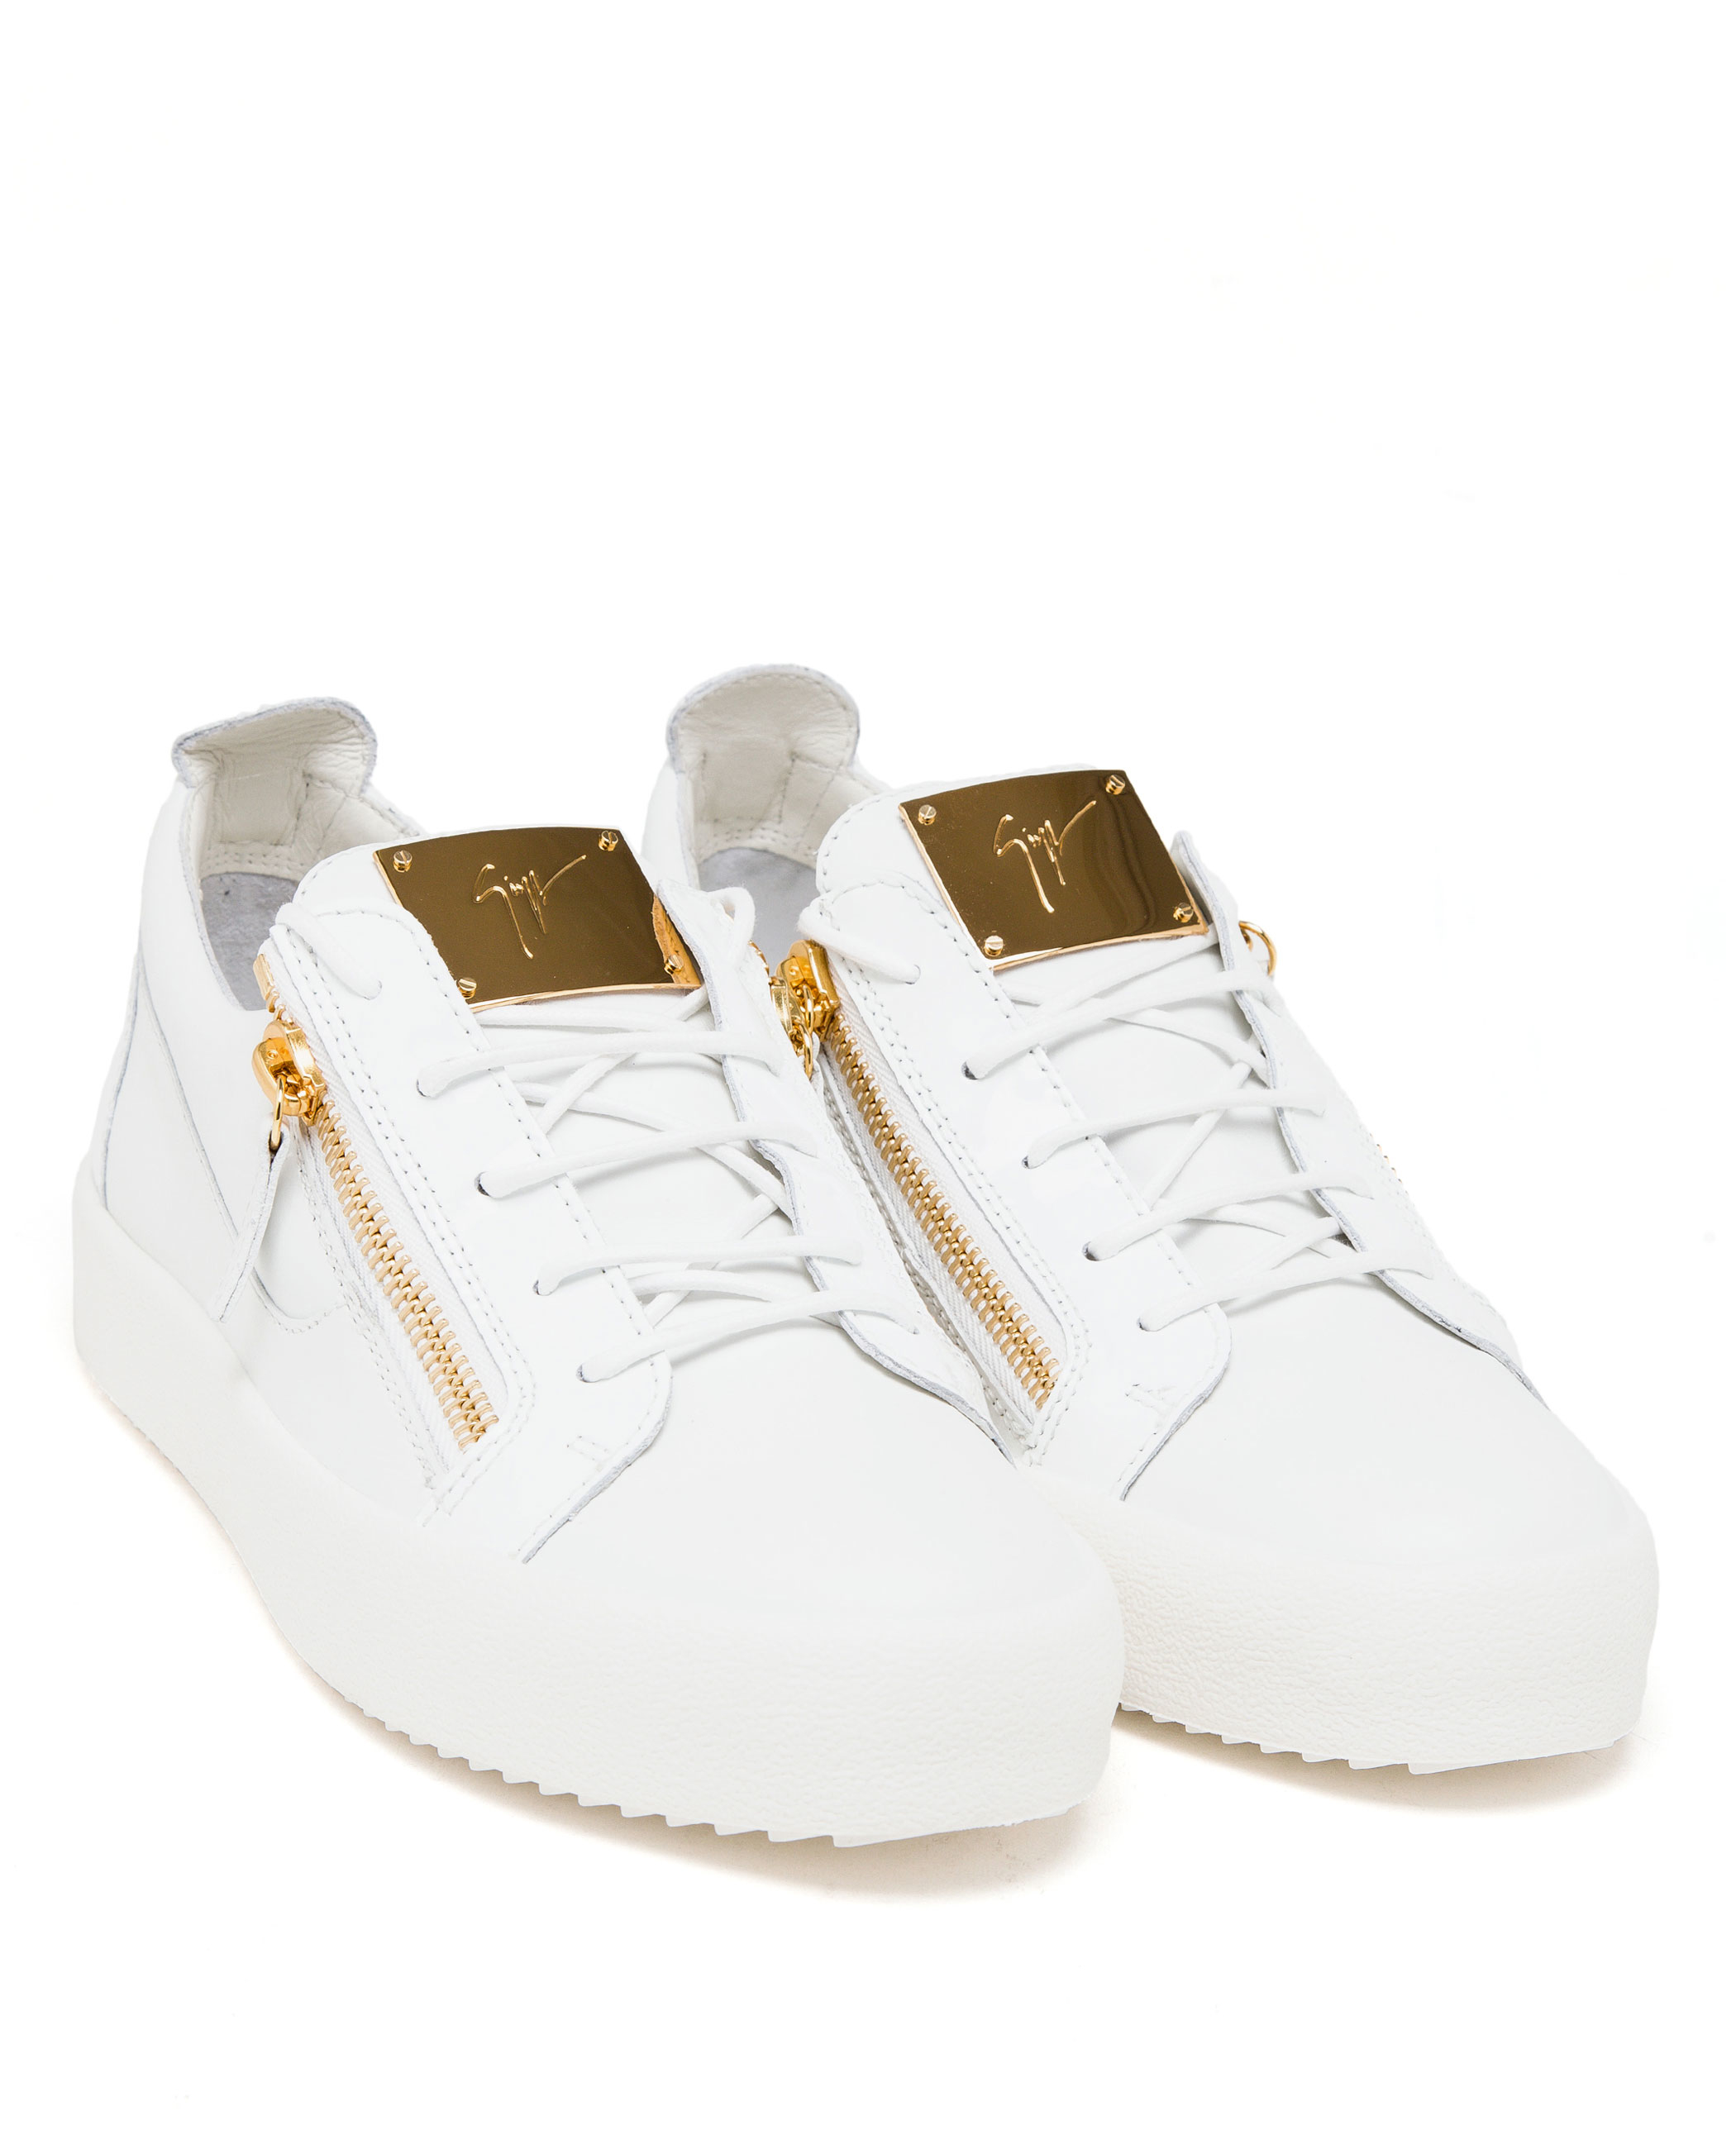 Giuseppe Zanotti Leather And Gold Tone Low-top Trainers in White - Lyst 385a73709480